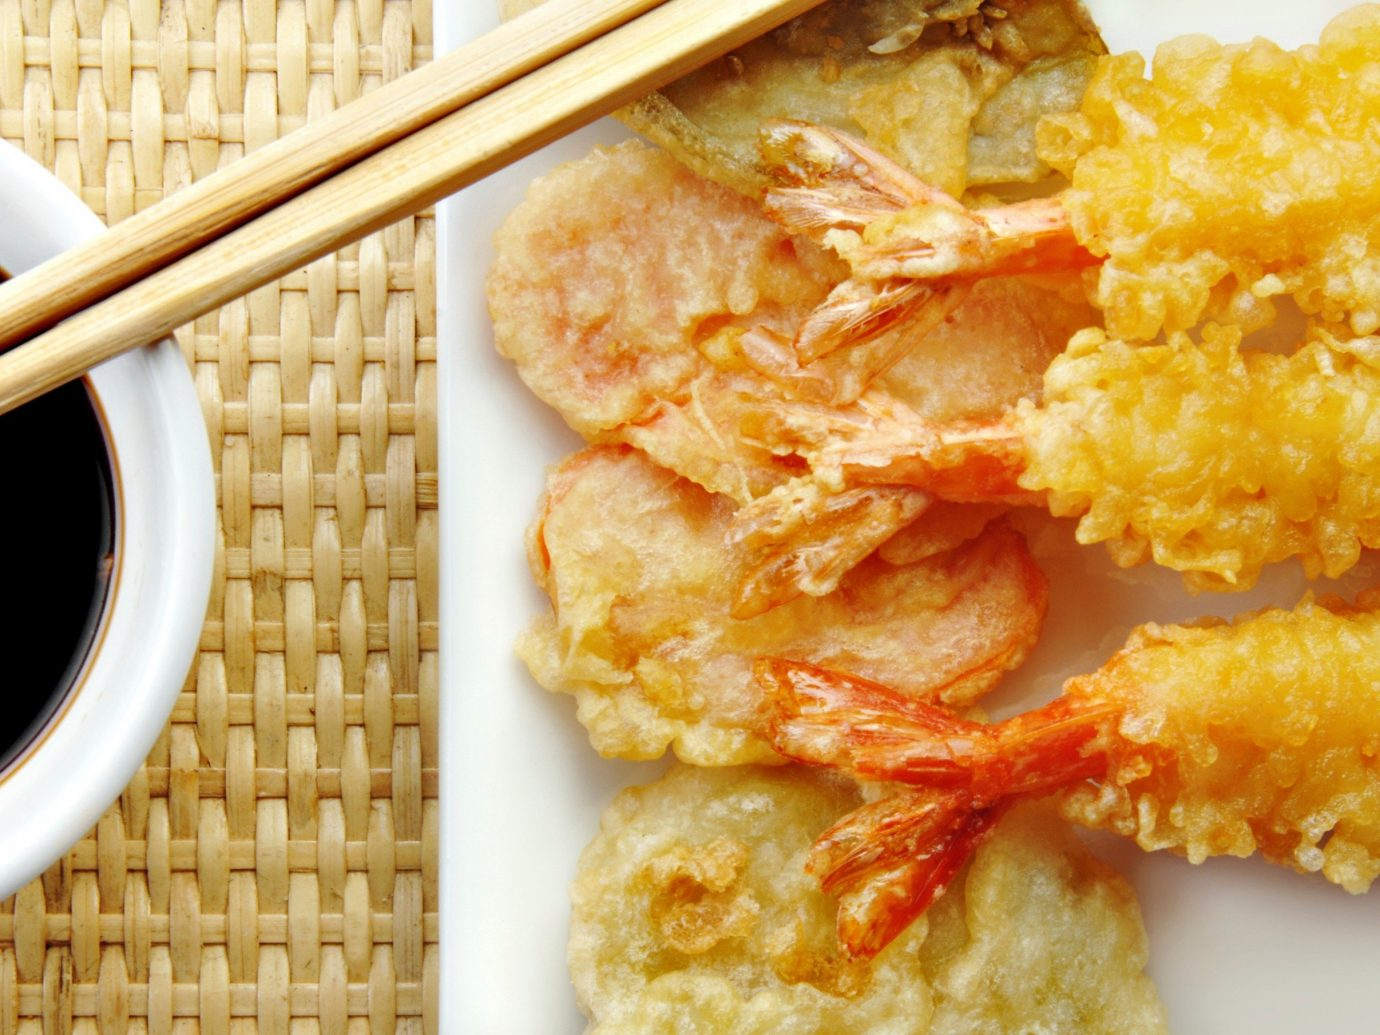 Food + Drink food dish plate cuisine tempura fried food asian food meal fish fried prawn Seafood panko chicken fingers chinese food breakfast